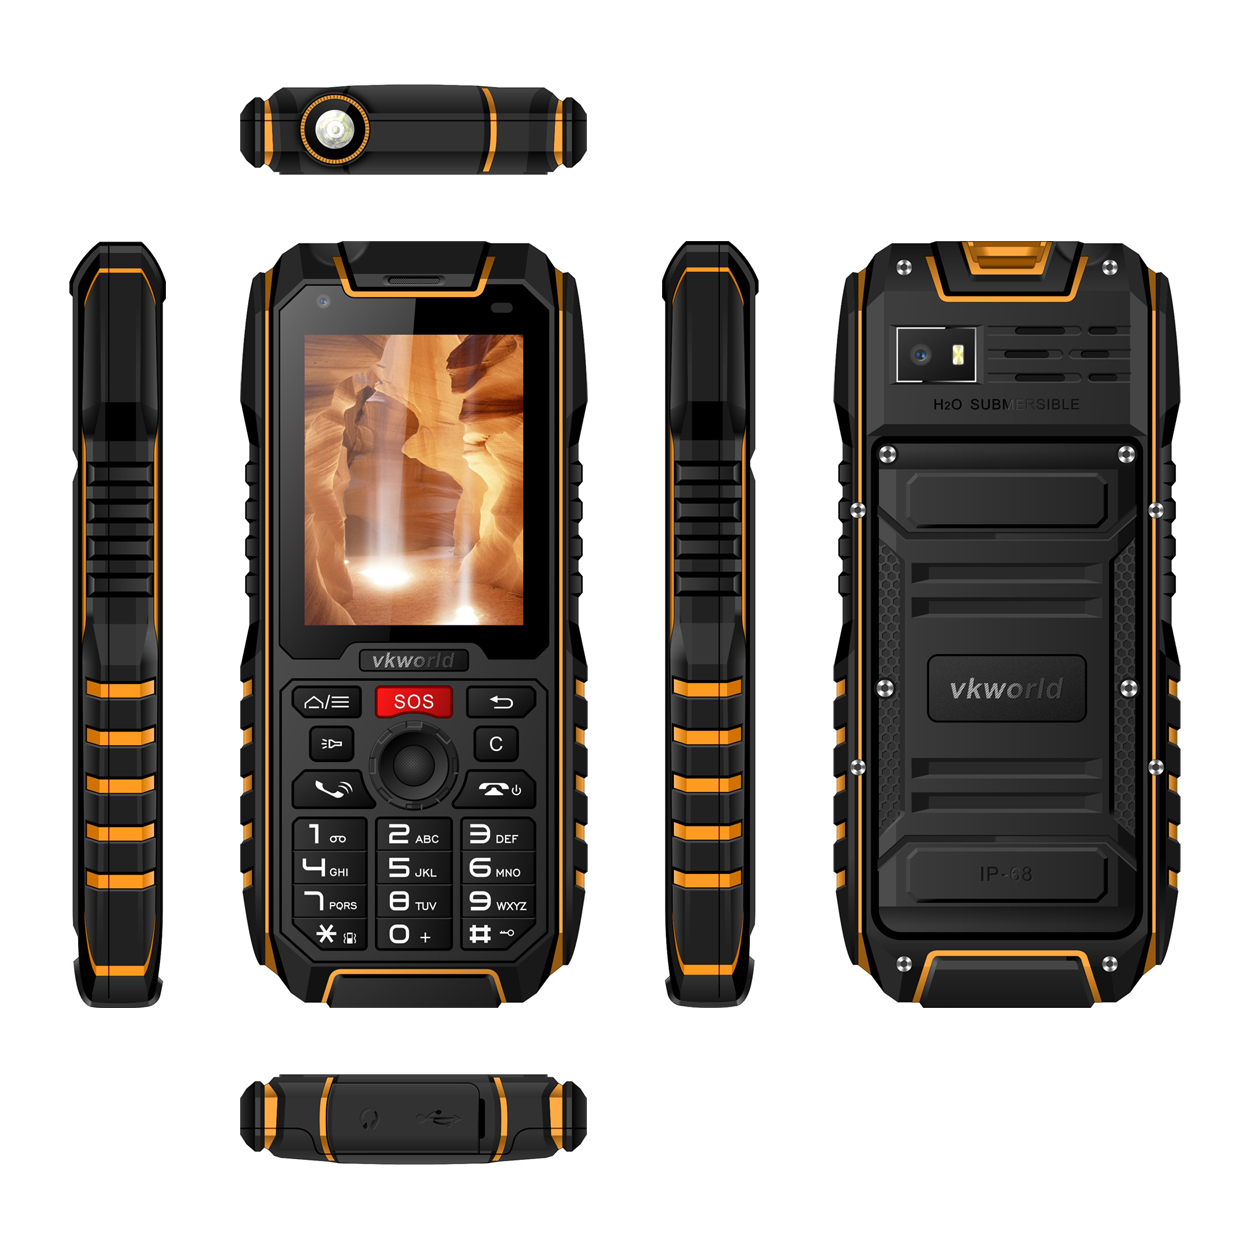 New Product Rugged IP68 Mobile Phone Vkworld New Vkworld V5 2G IP68 Waterproof cheap Mobile Phone Big Bettery